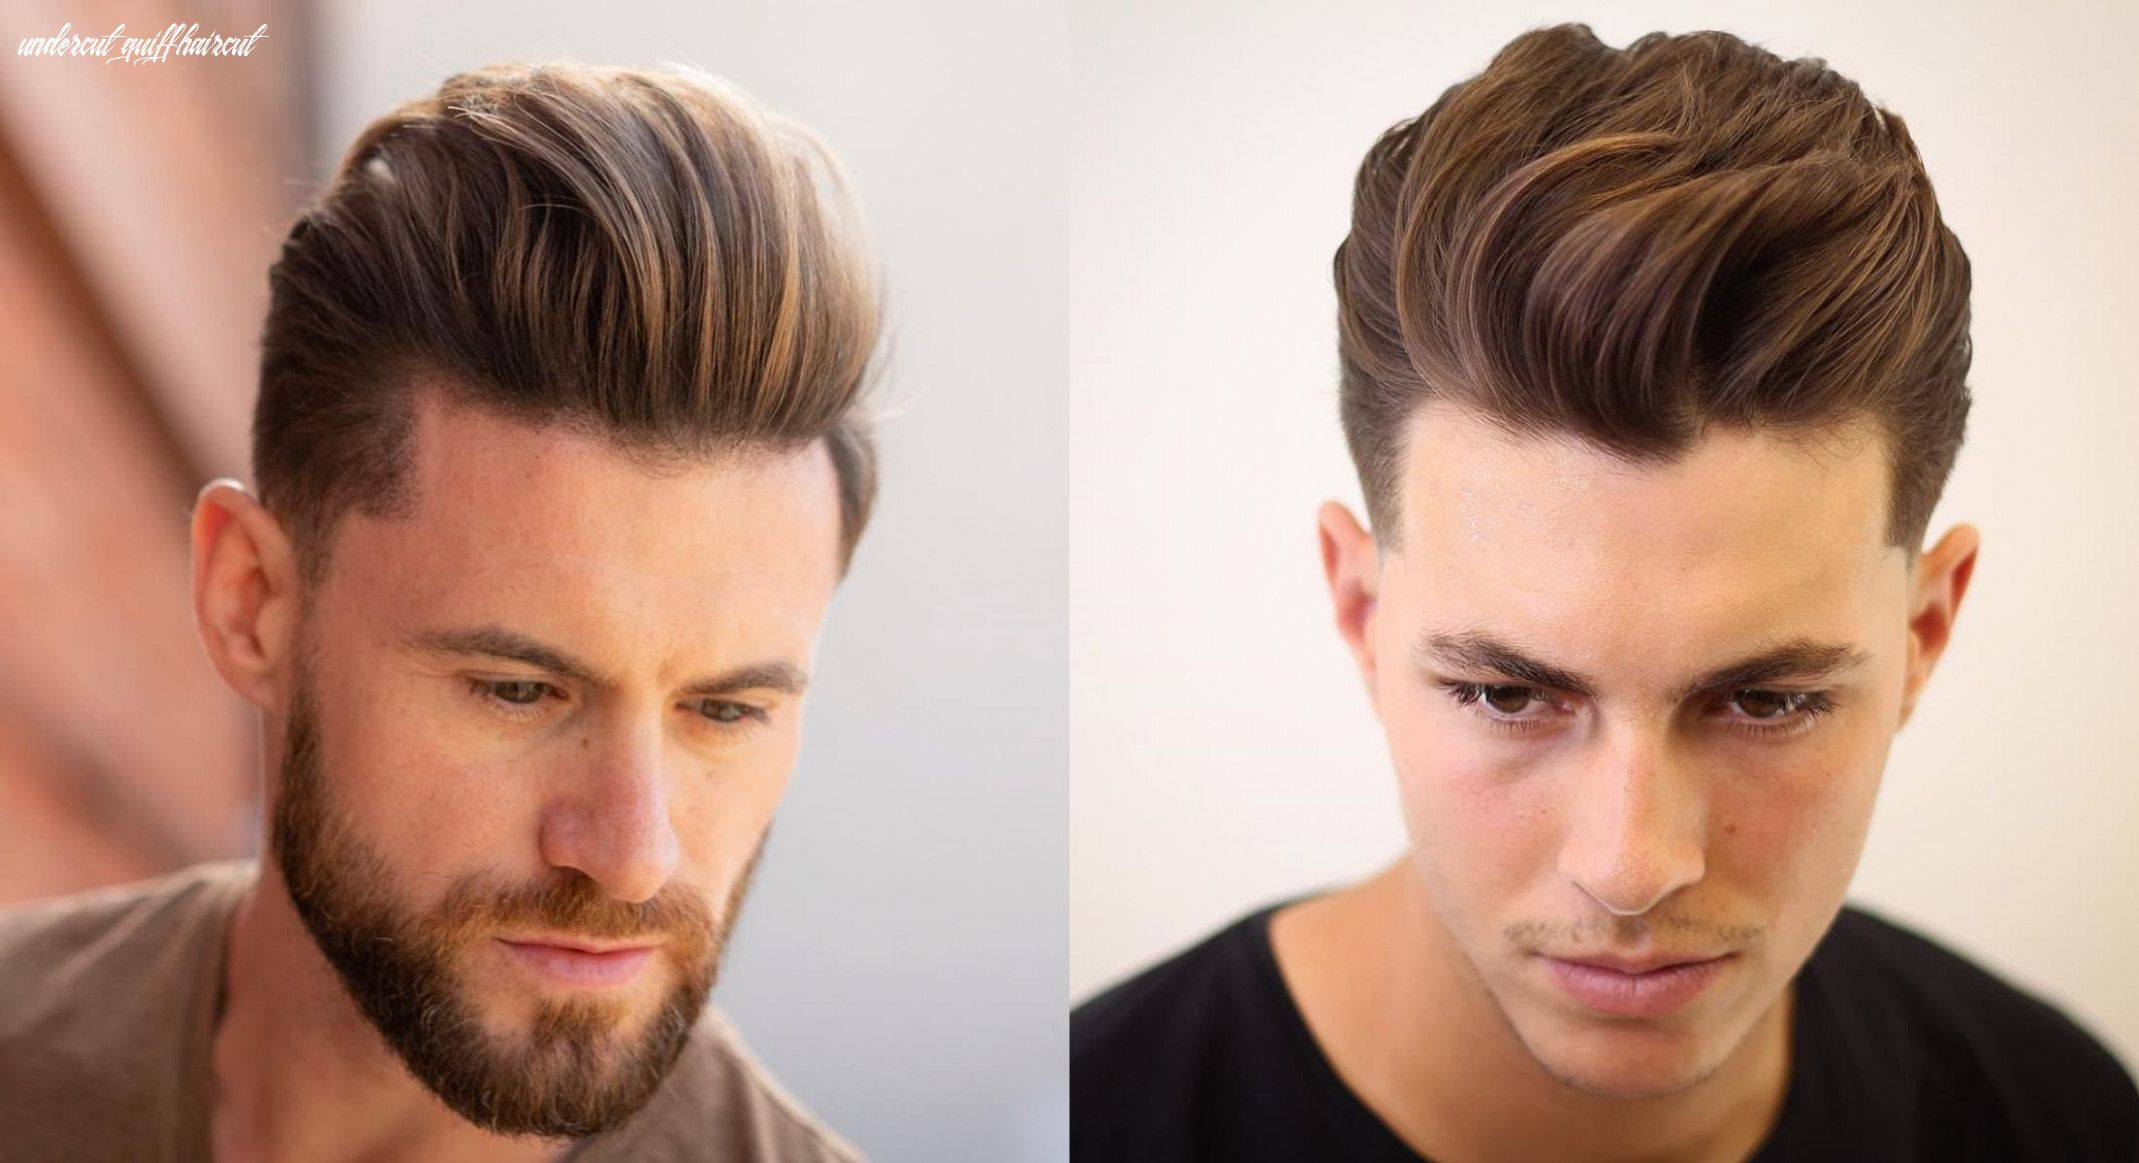 10 Undercut Quiff Haircut Quiff Hairstyles Hair Styles Top Hairstyles For Men